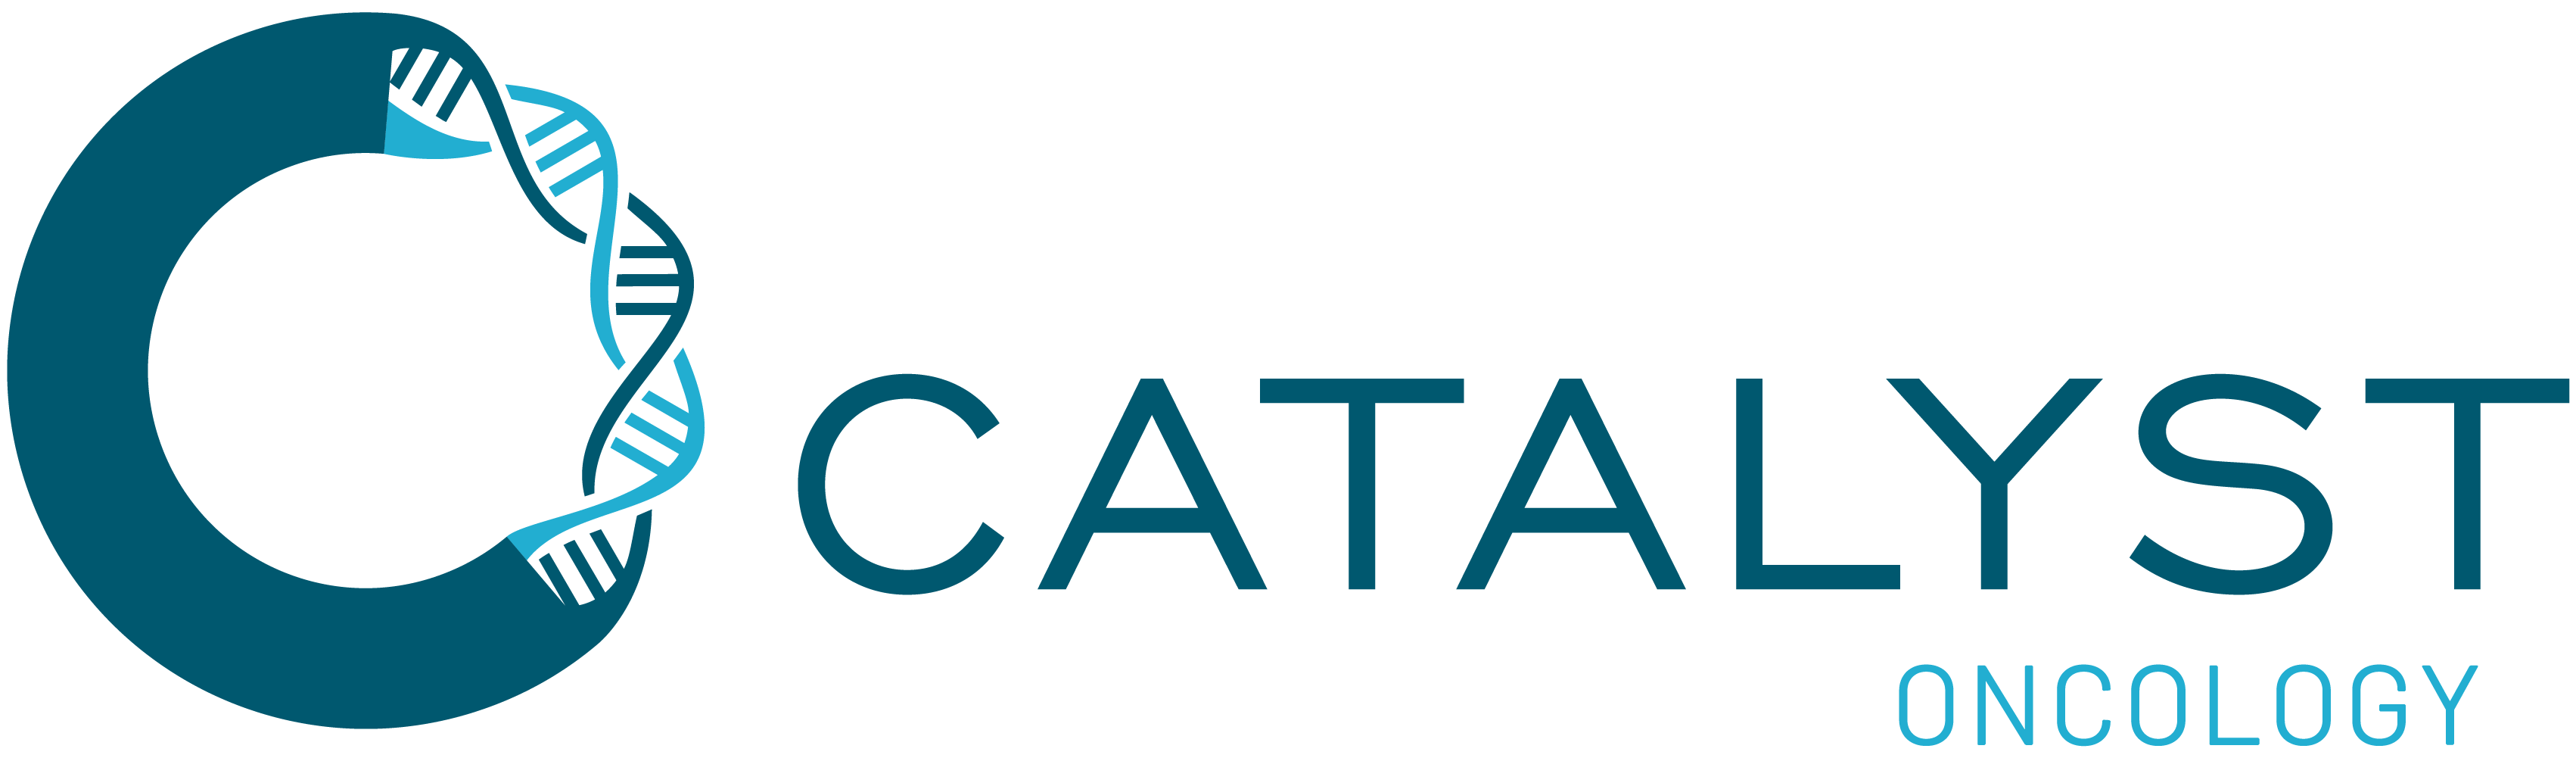 Catalyst_Oncology_logo